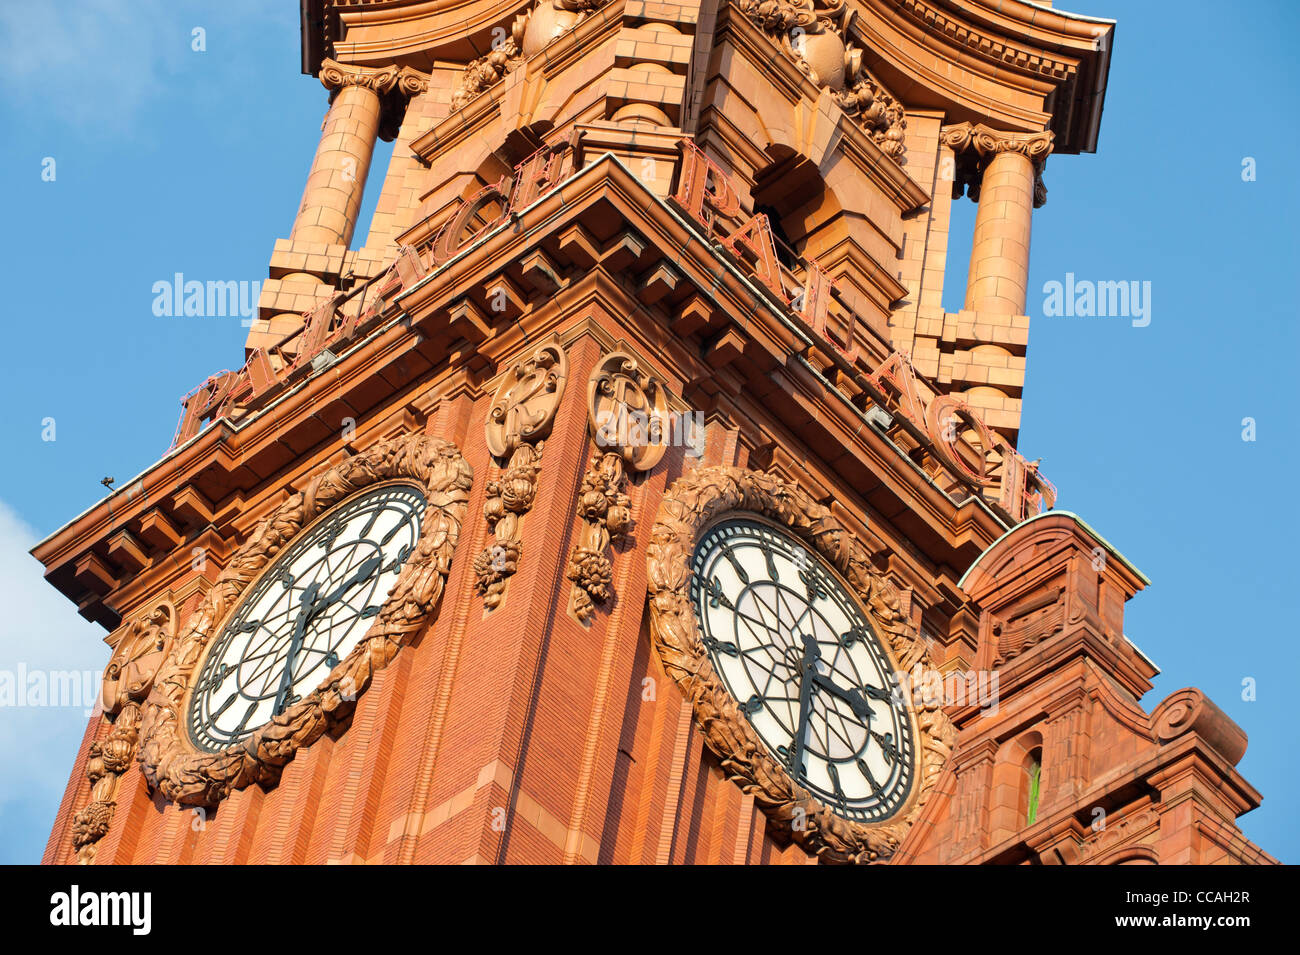 The clock tower of the Eclectic Baroque Palace Hotel, Oxford Road, Manchester. - Stock Image